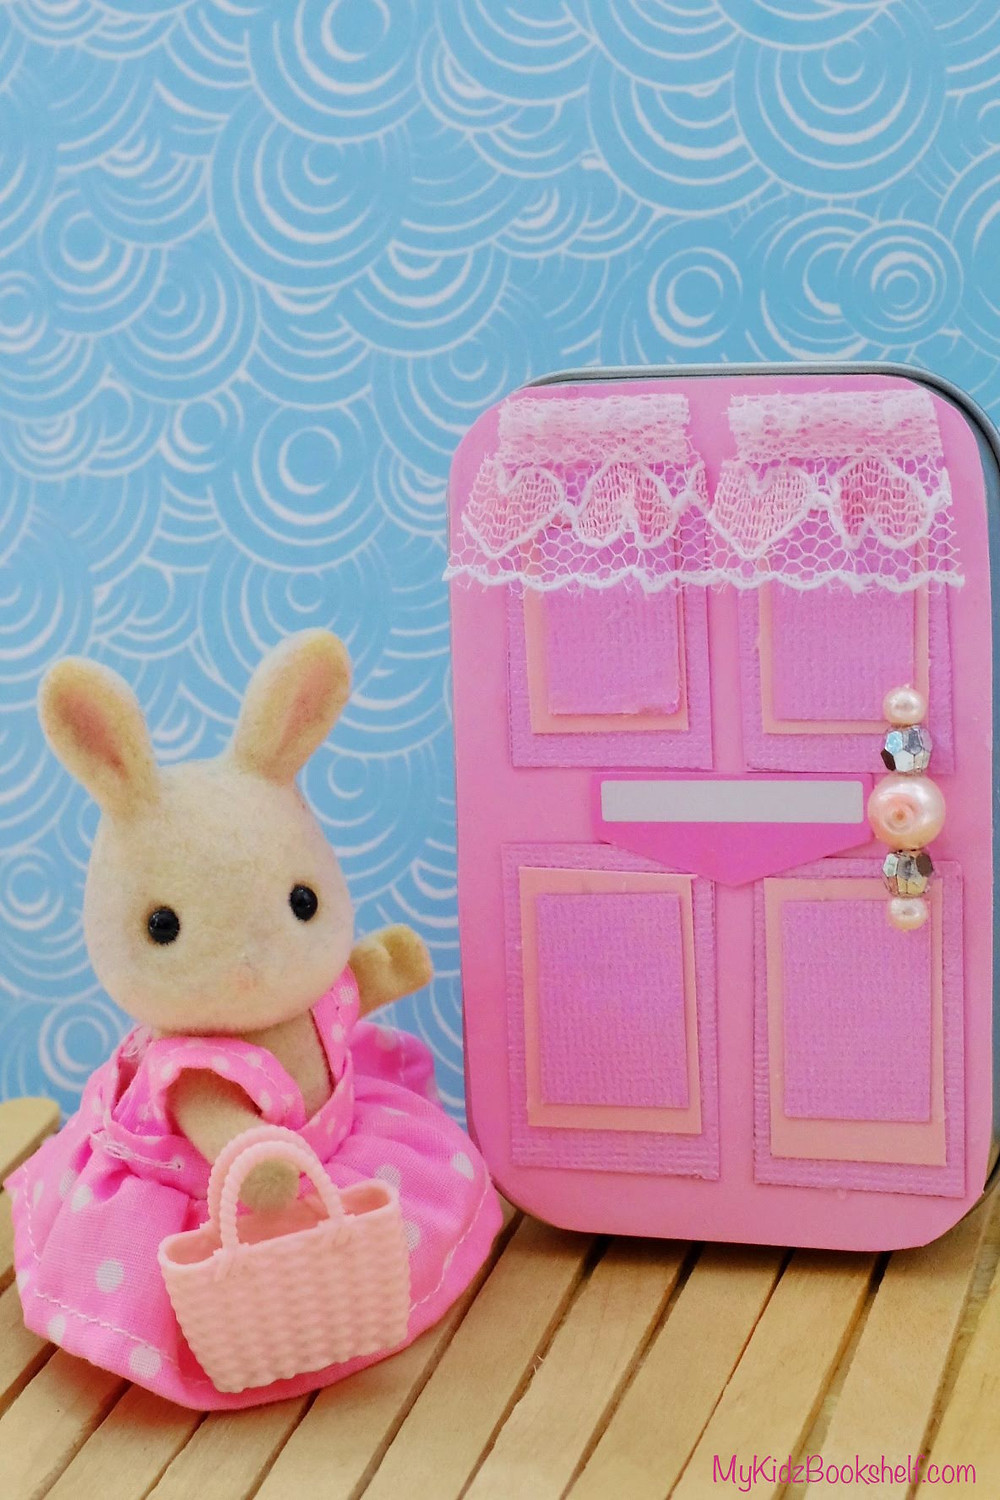 DIY - Make Your Own A-Door-Able Altoid Tin Craft for Kids of All Ages! Calico Critter Sylvanian Family bunny by pink door